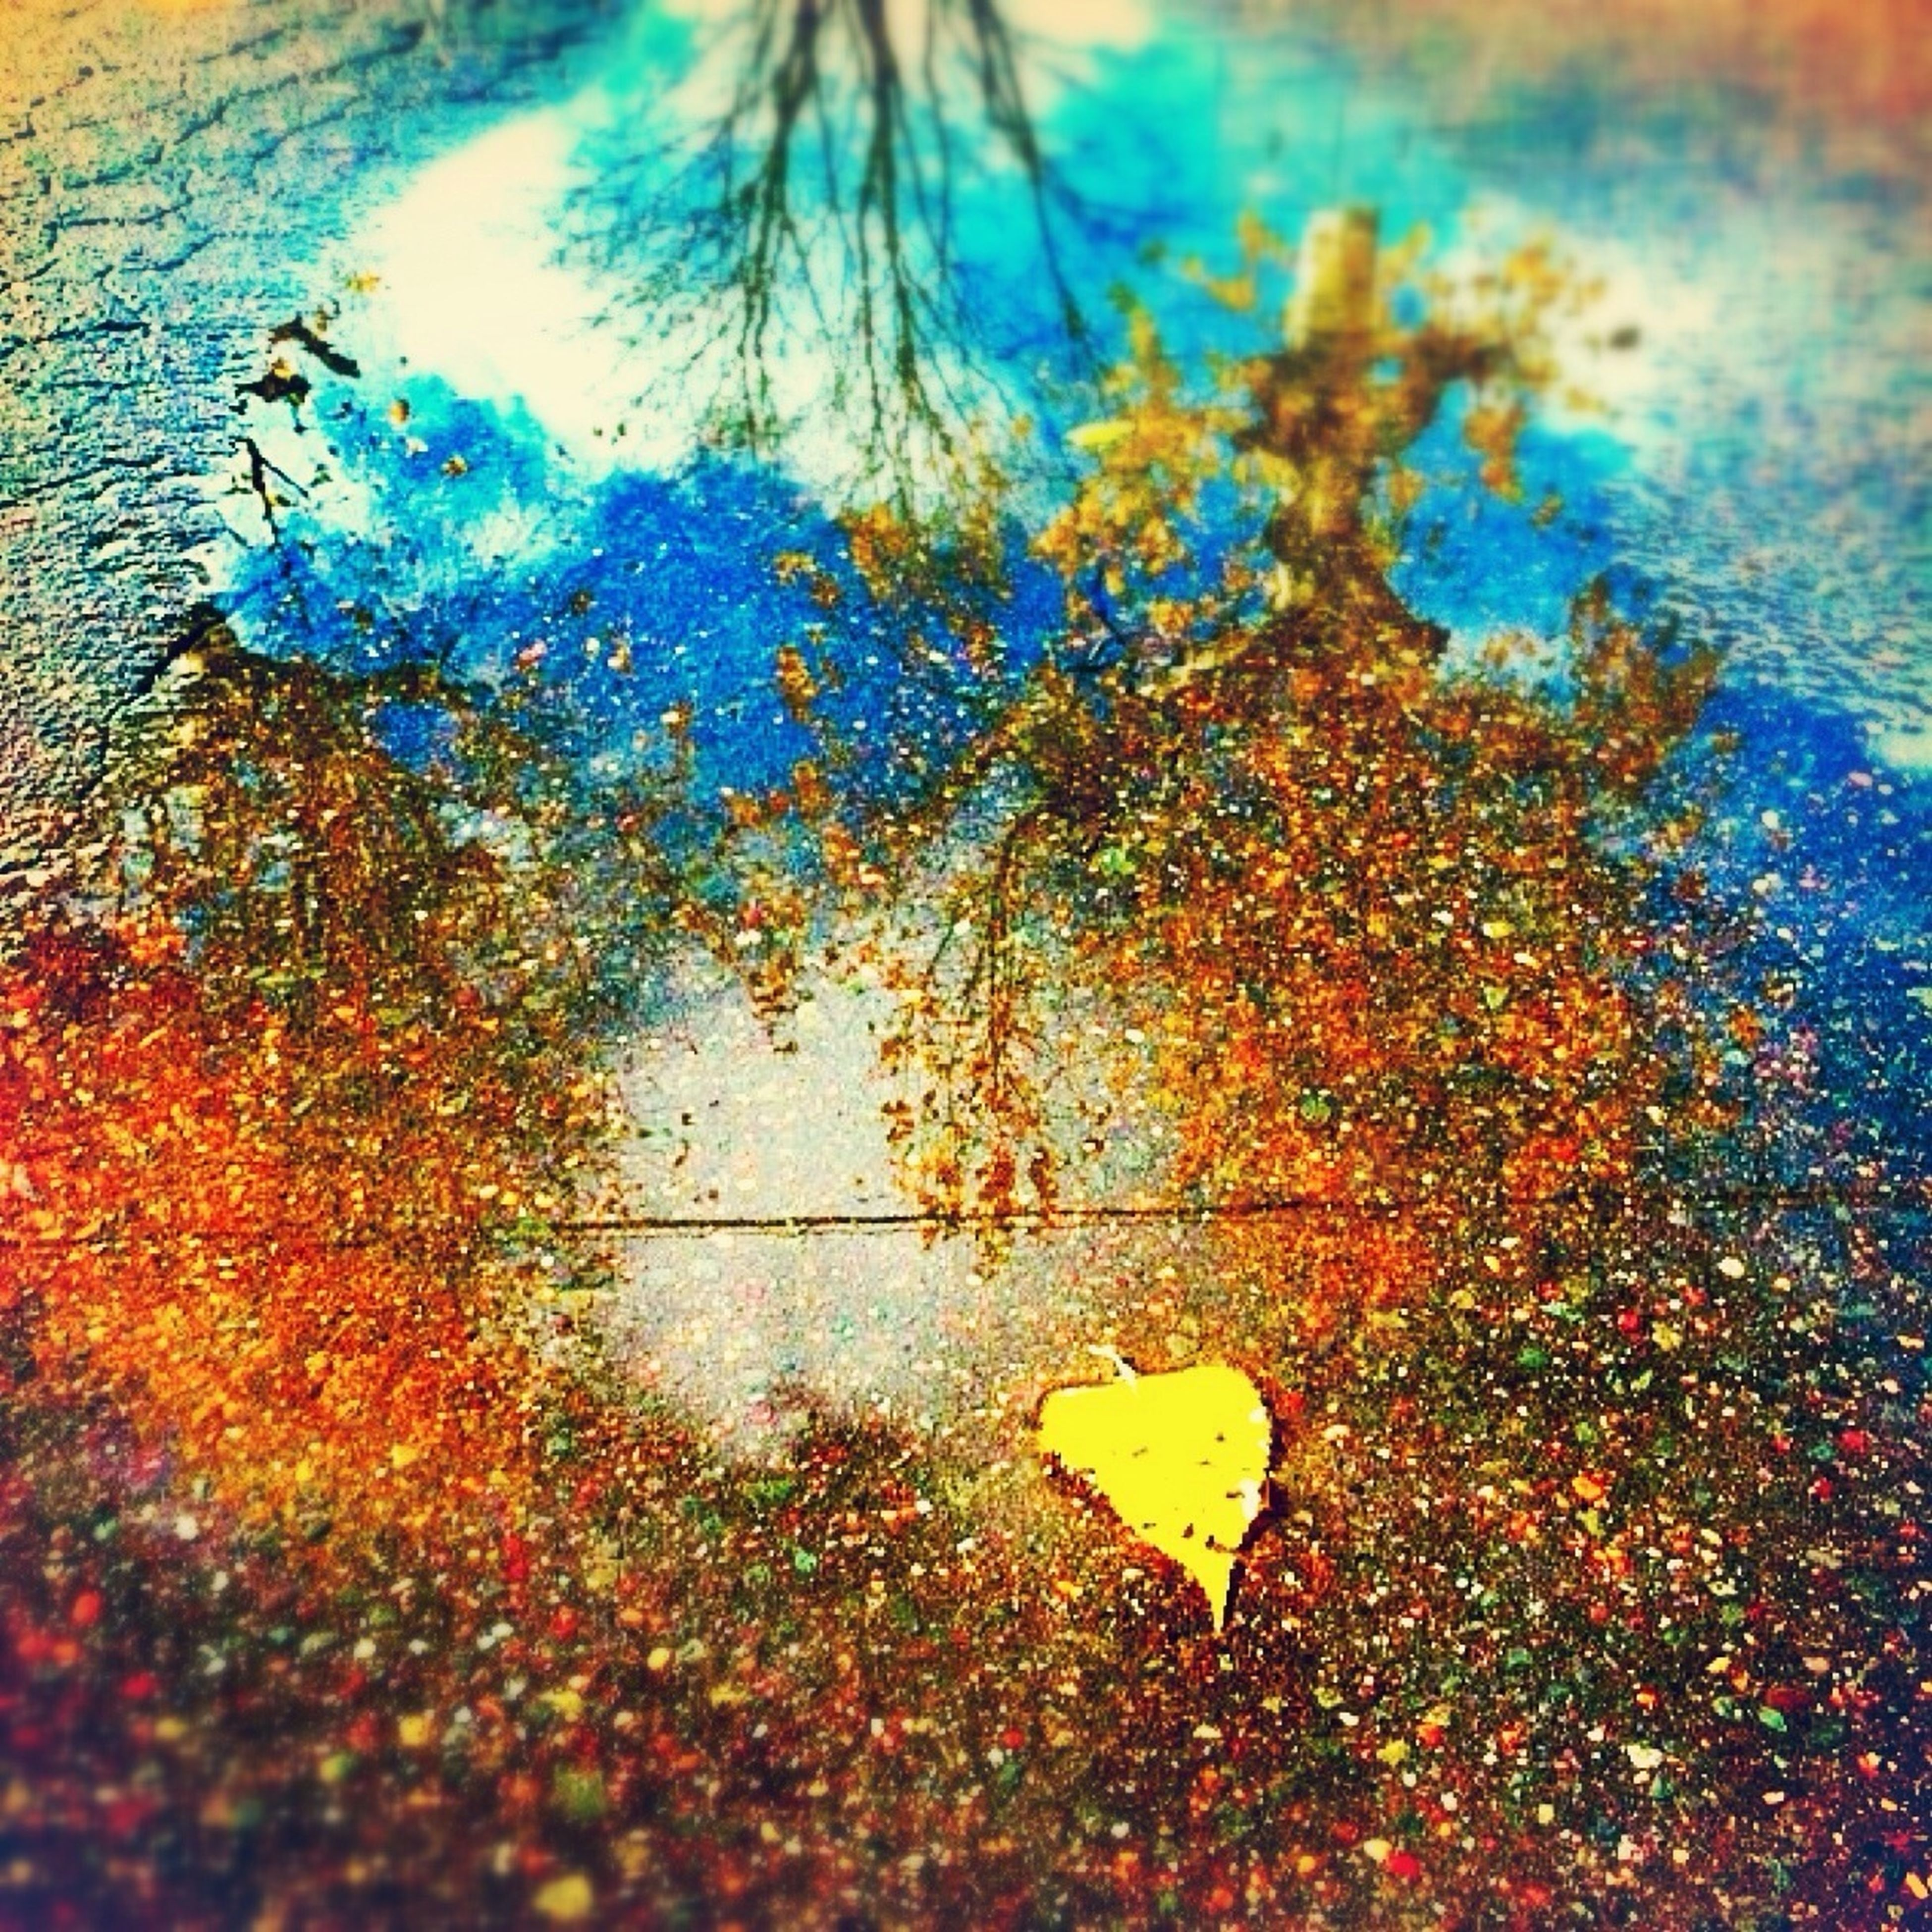 autumn, season, tree, change, leaf, yellow, no people, window, wet, close-up, day, reflection, nature, sky, puddle, water, indoors, fallen, blue